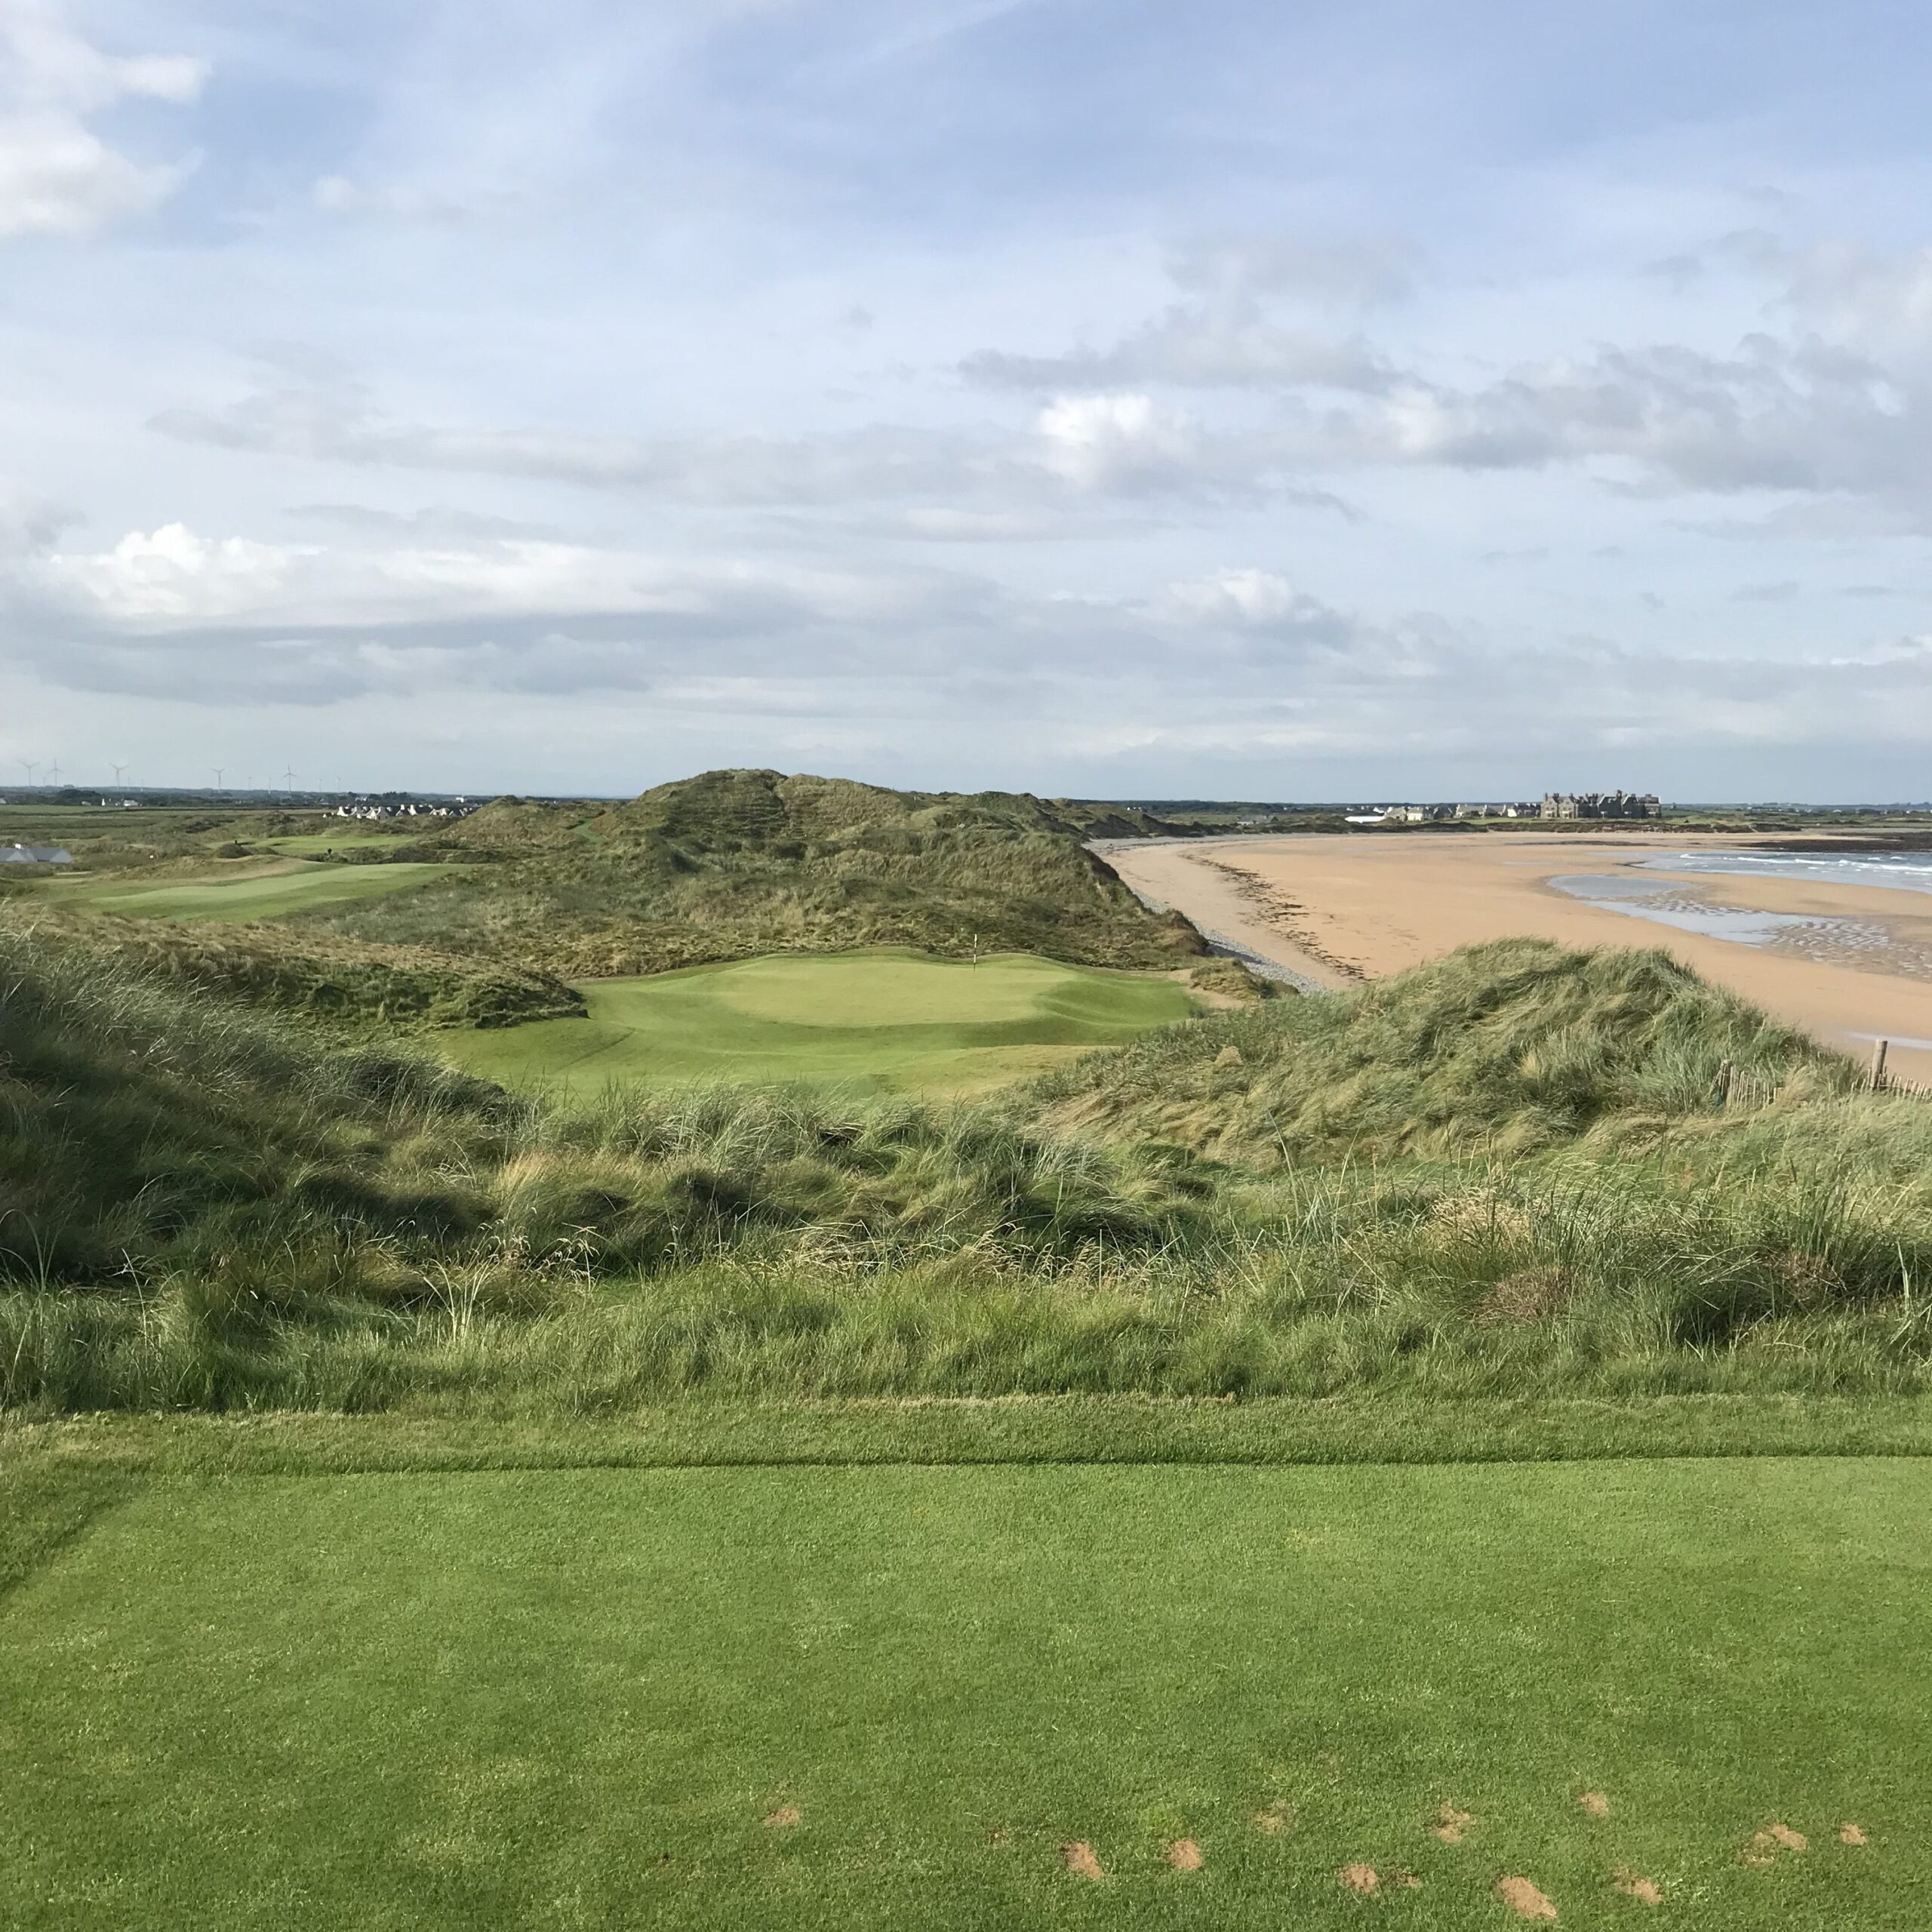 A photo of the 14th hole at Doonbeg Golf Course in Ireland